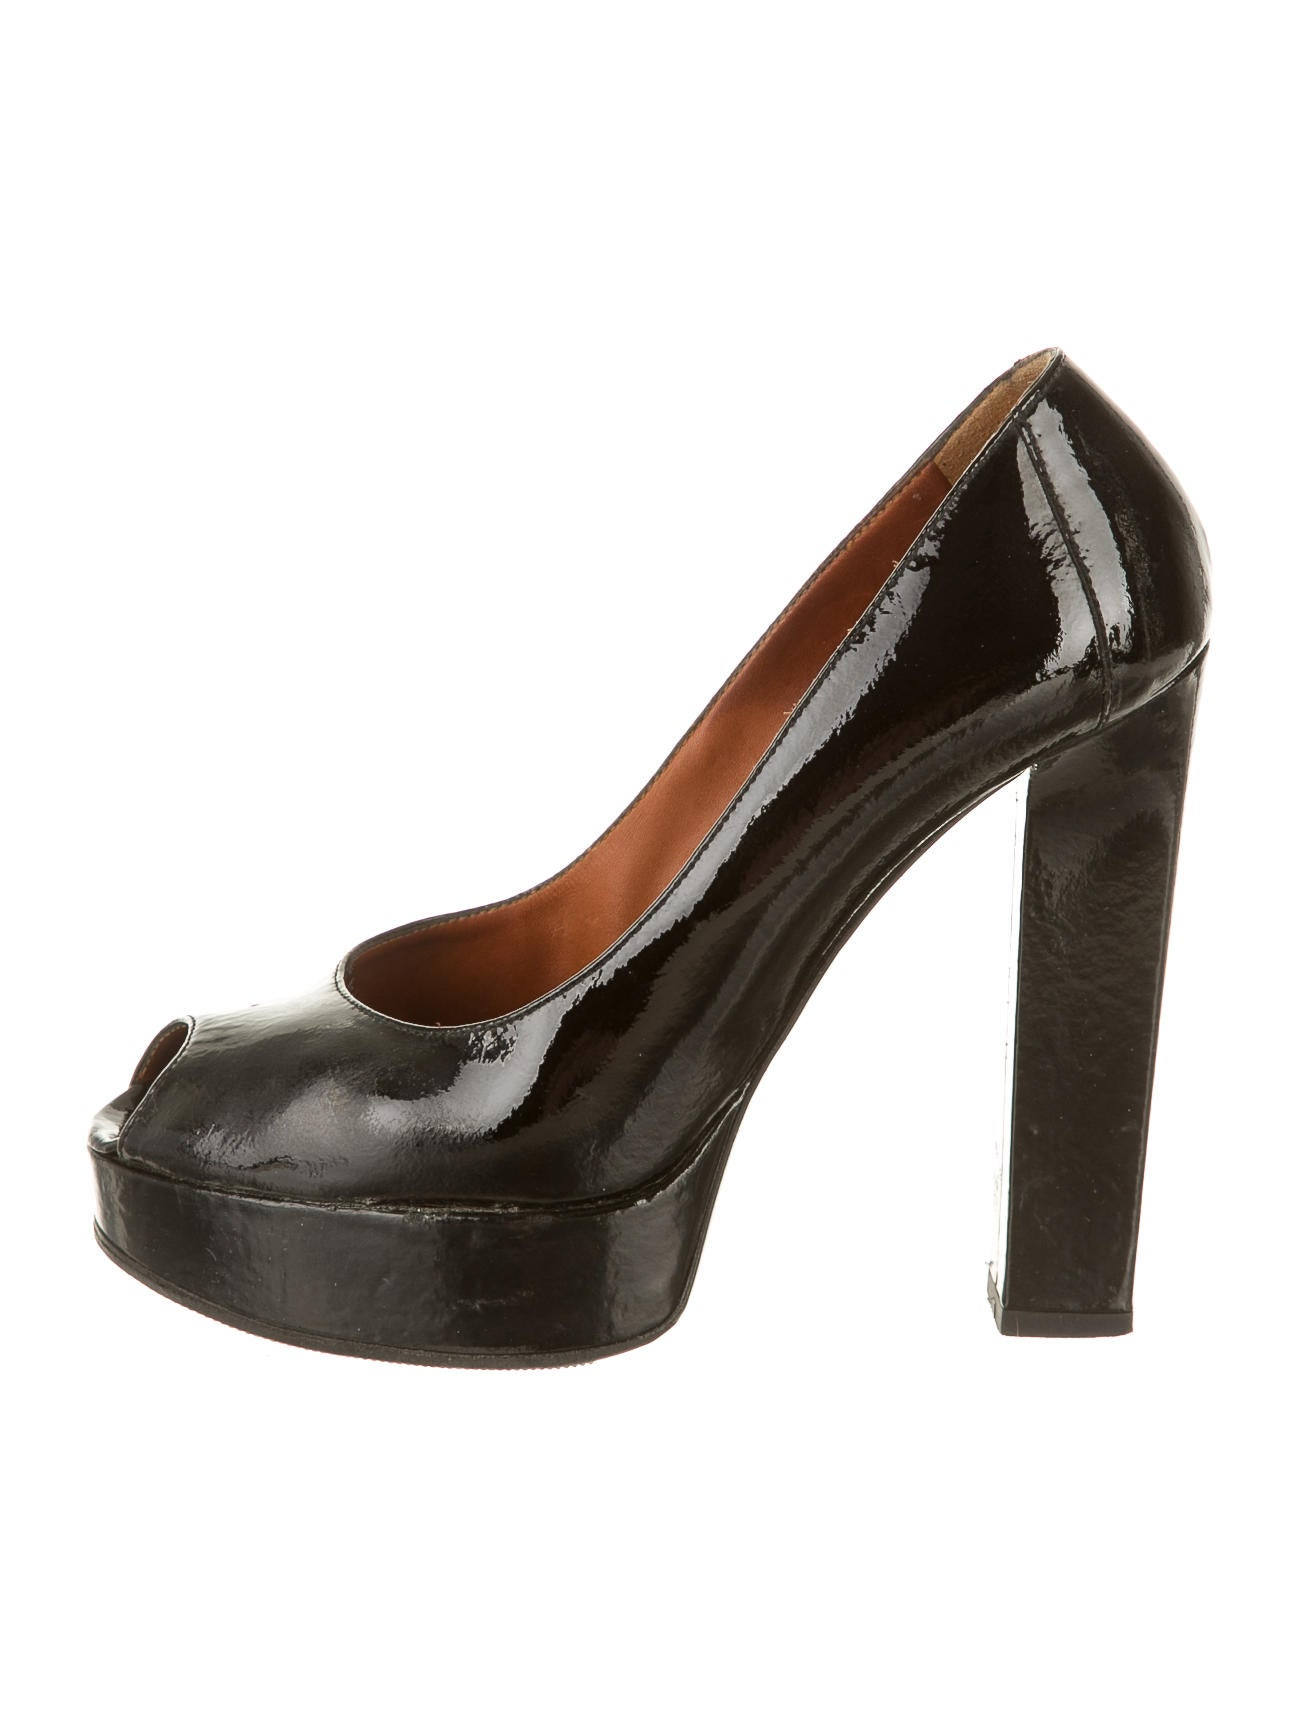 Lanvin Pumps - Shoes - LAN27400 | The RealReal